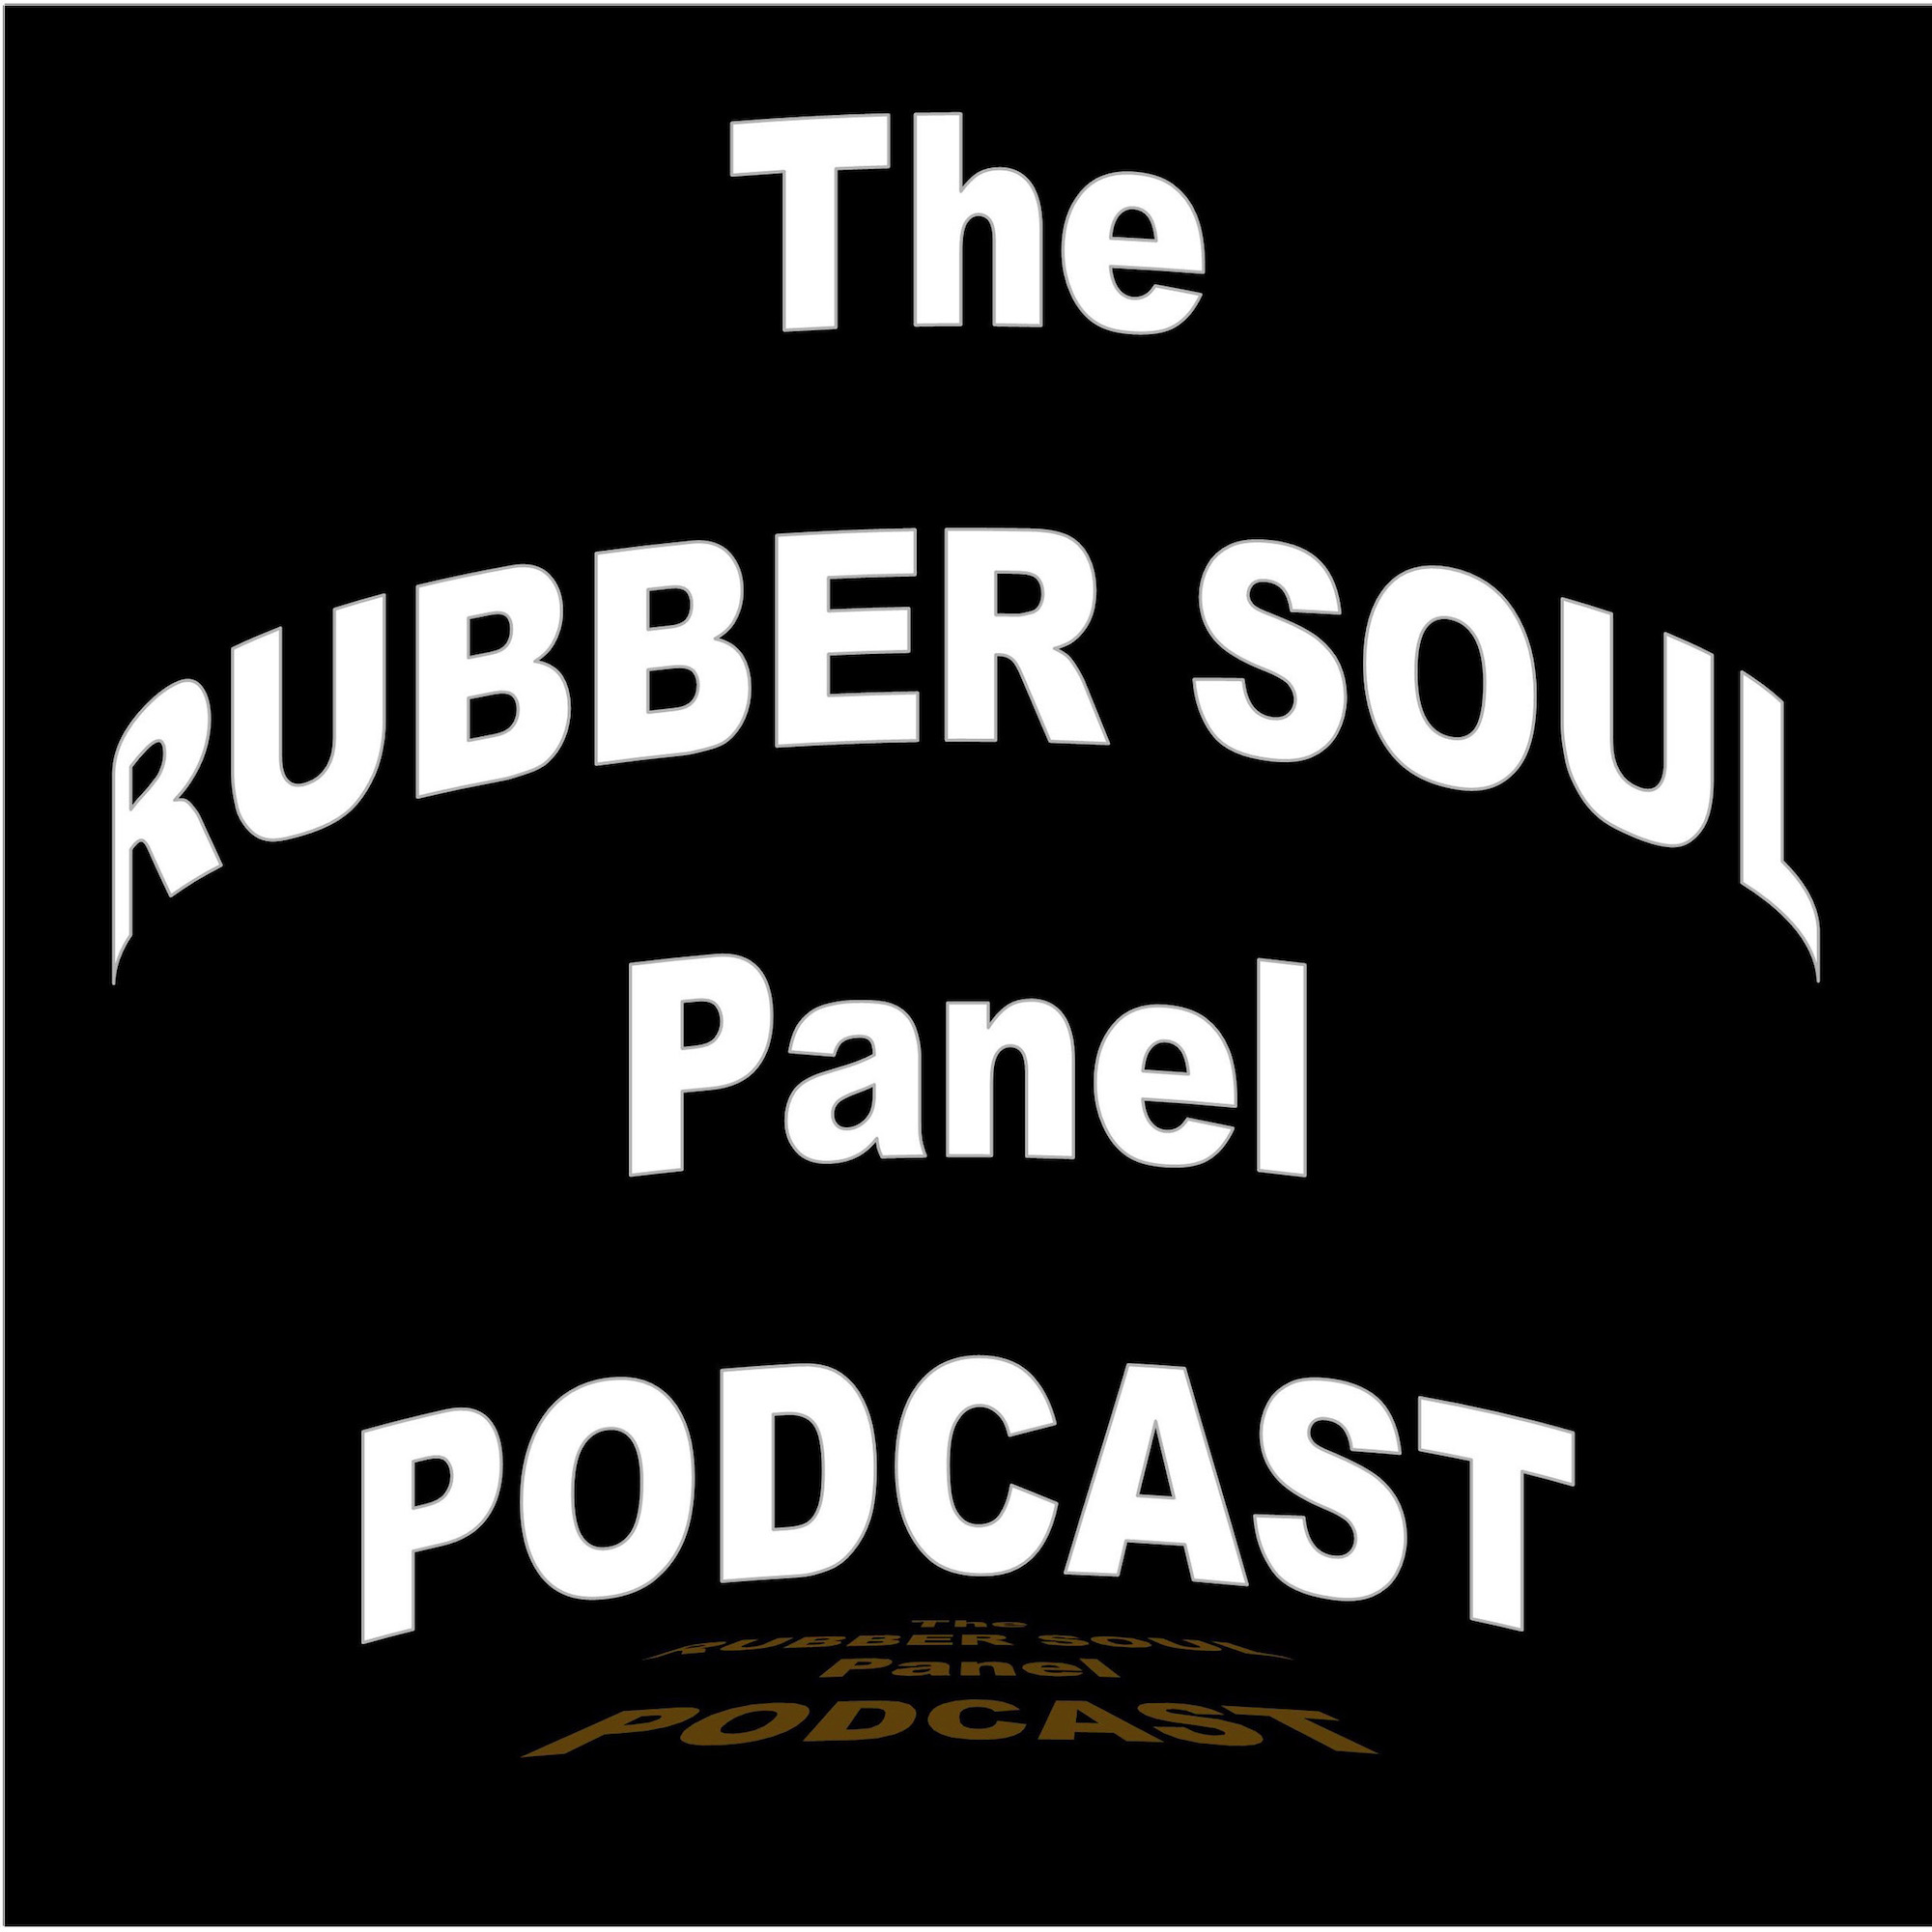 Rubber Soul Panel Podcast